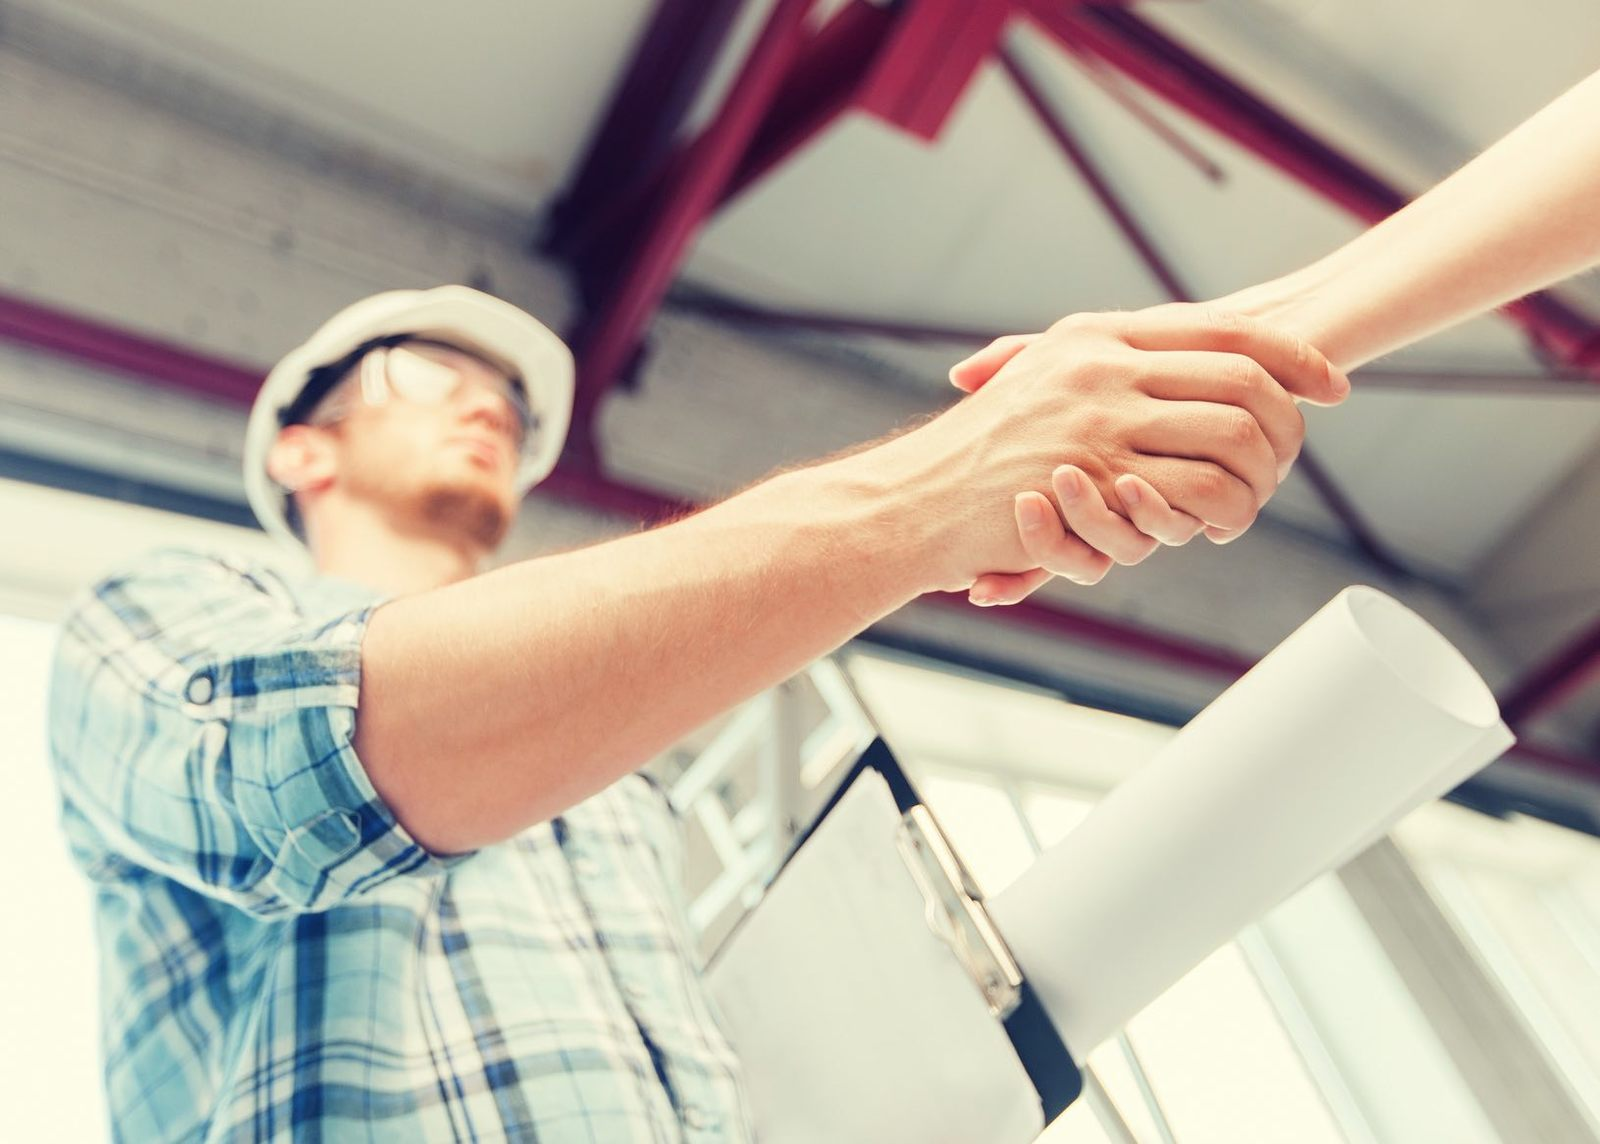 8 Questions You Should Ask When Hiring A Roofing Company